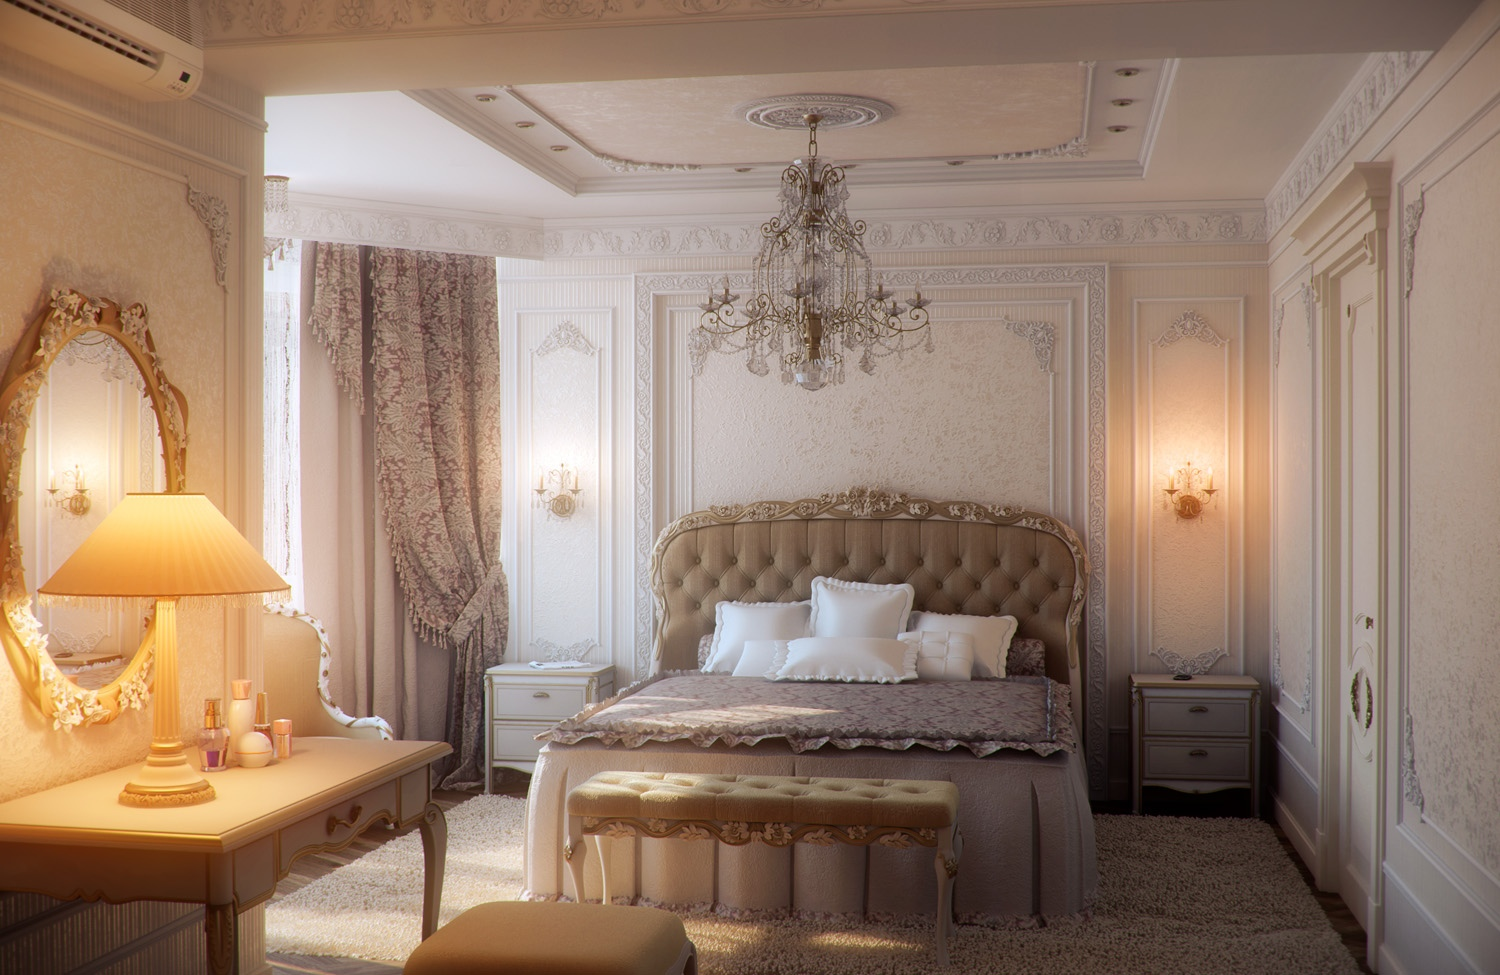 25 Traditional Bedroom Design For Your Home - The WoW Style on Bedroom Decor  id=28858